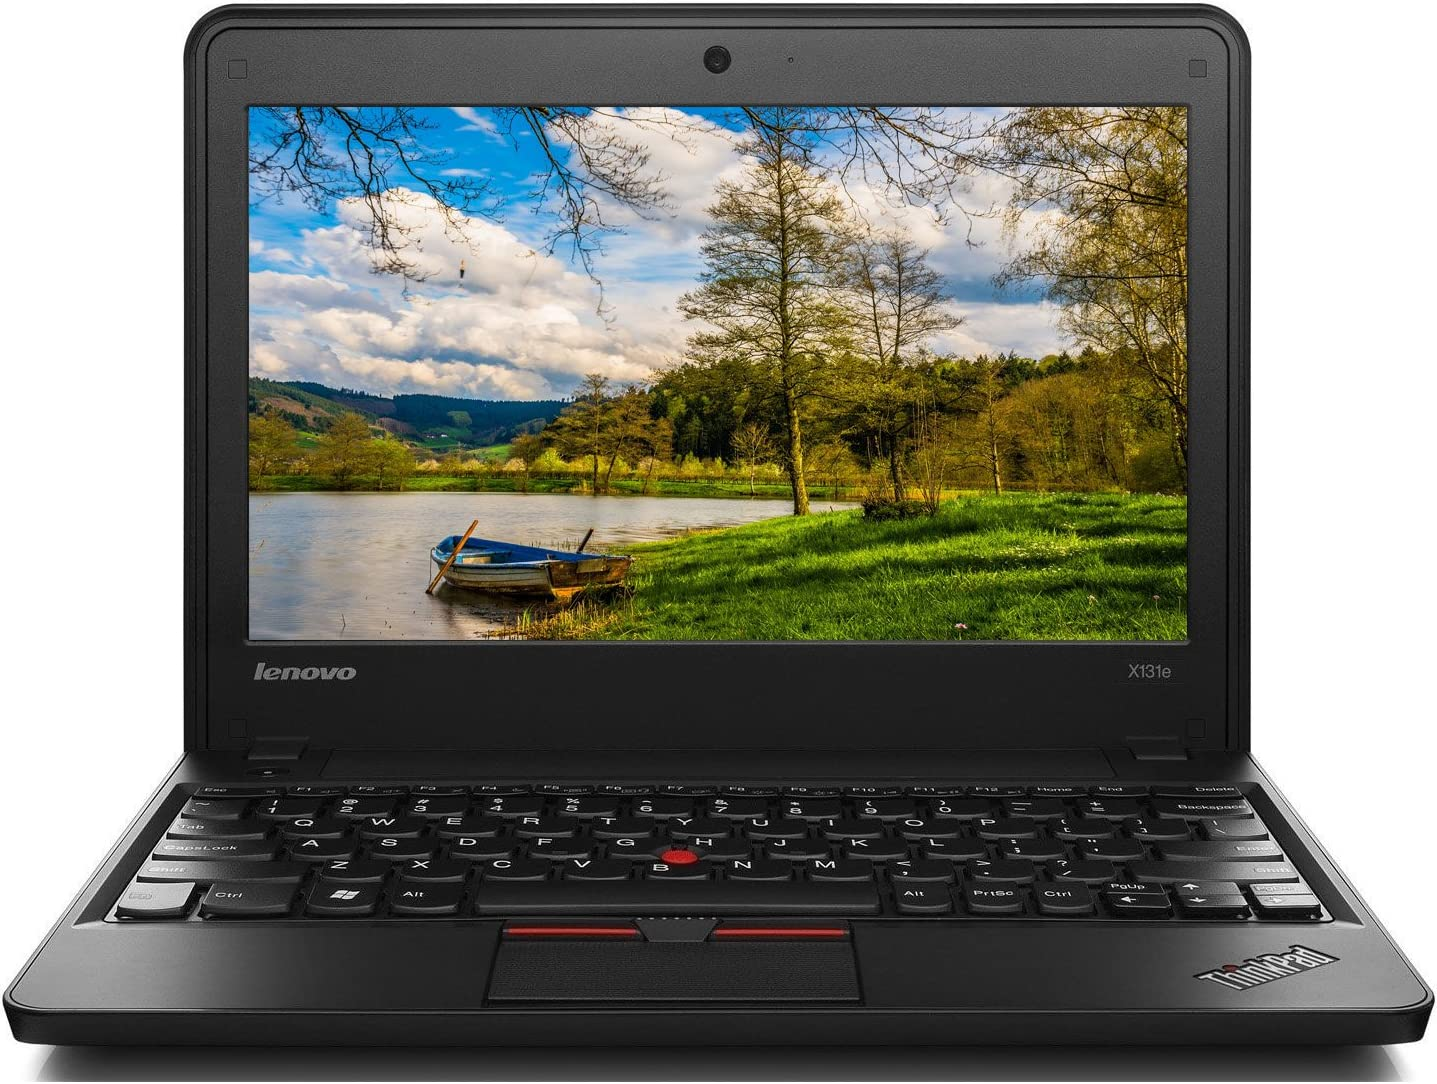 "Lenovo ThinkPad X131e 11.6"" LED Chromebook Intel Celeron Dual Core 4GB 16GB SSD [Renewed]"